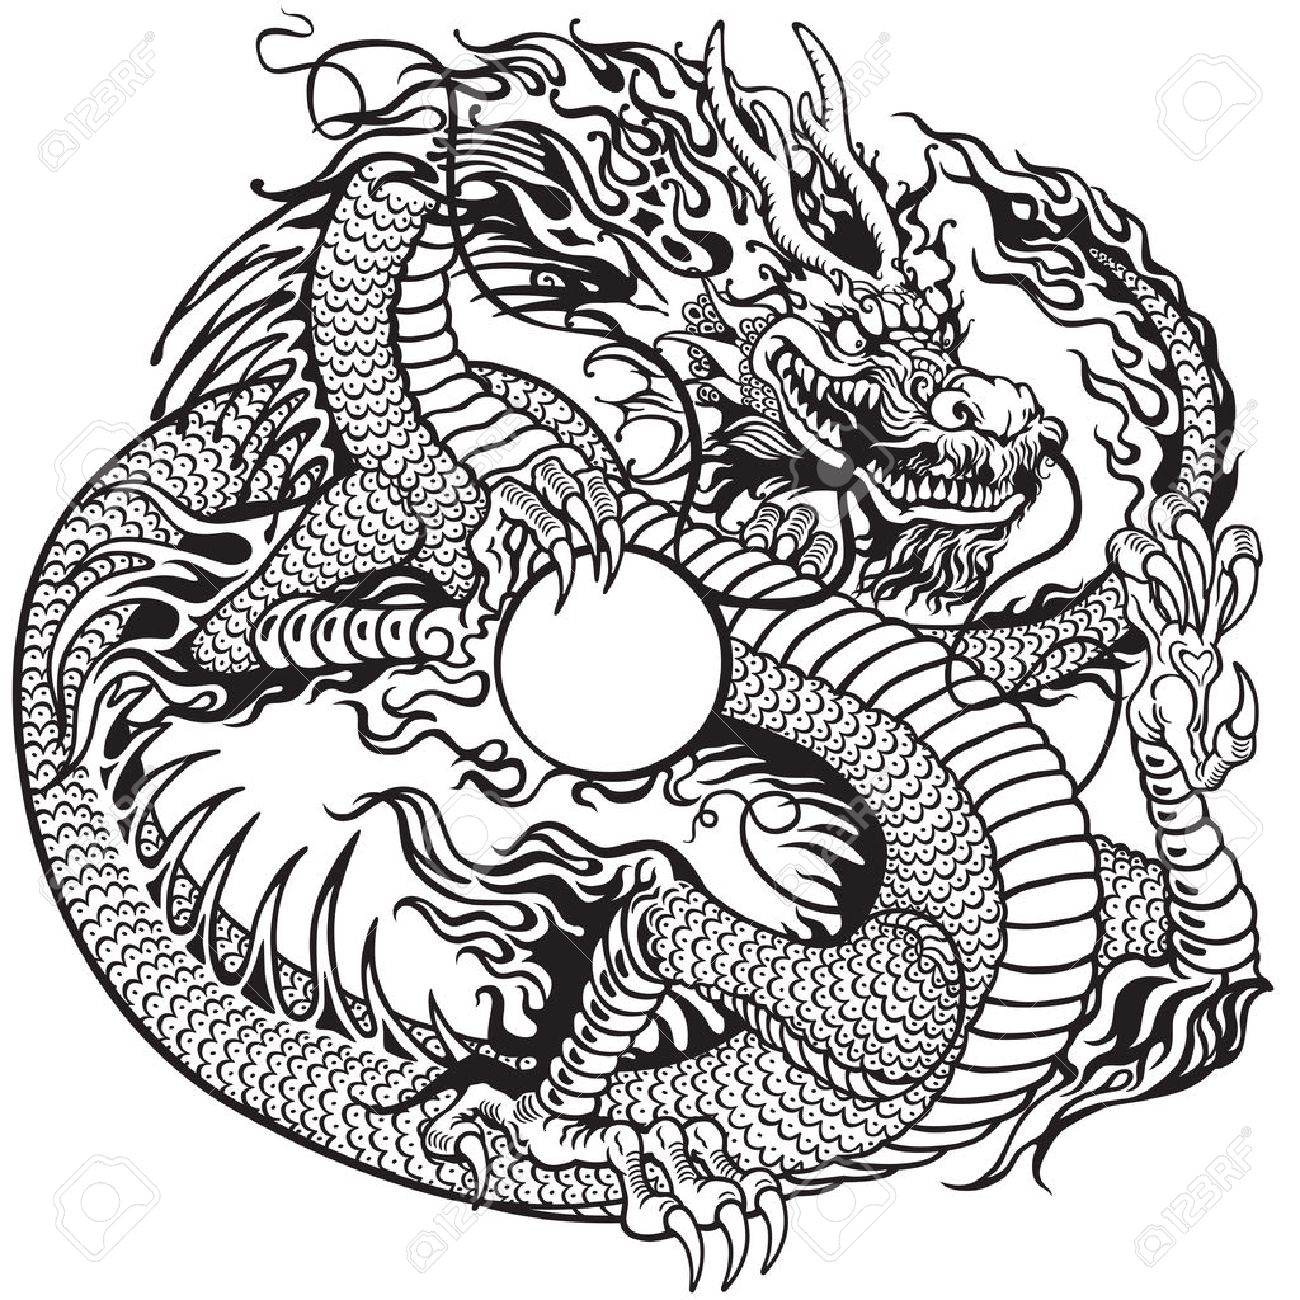 Dragon: Chinese Dragon Holding Pearl, Black And White Tattoo Illustration  Illustration